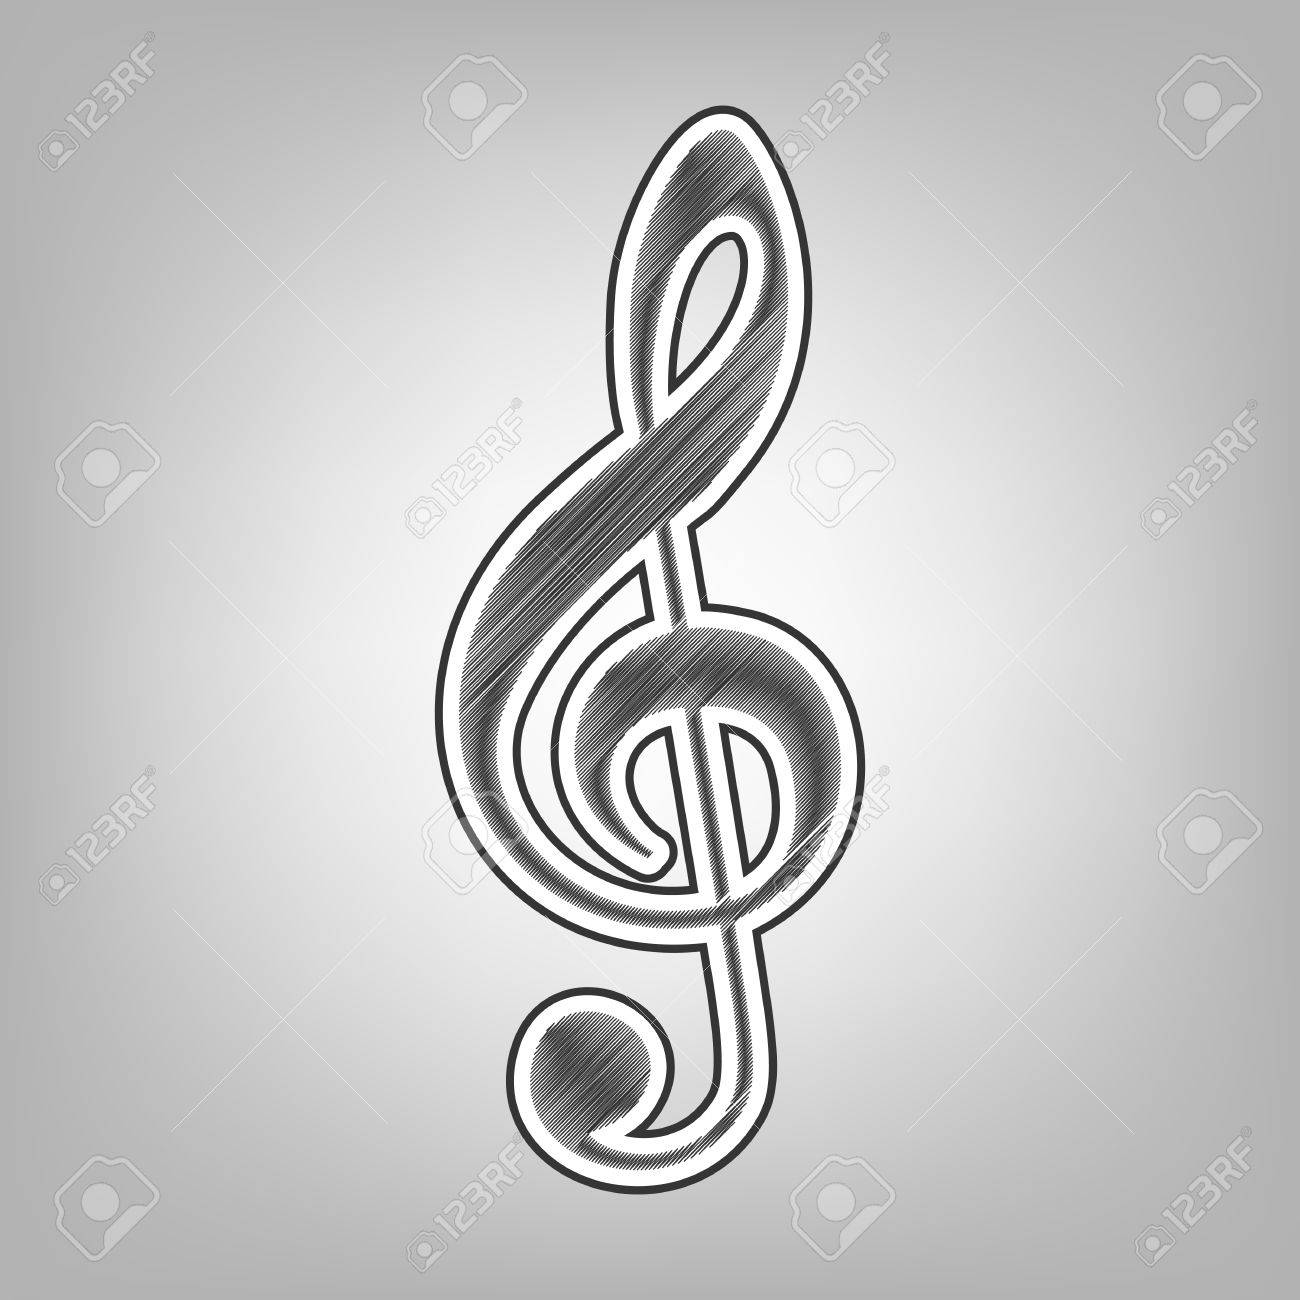 Music violin clef sign g clef treble clef vector pencil sketch